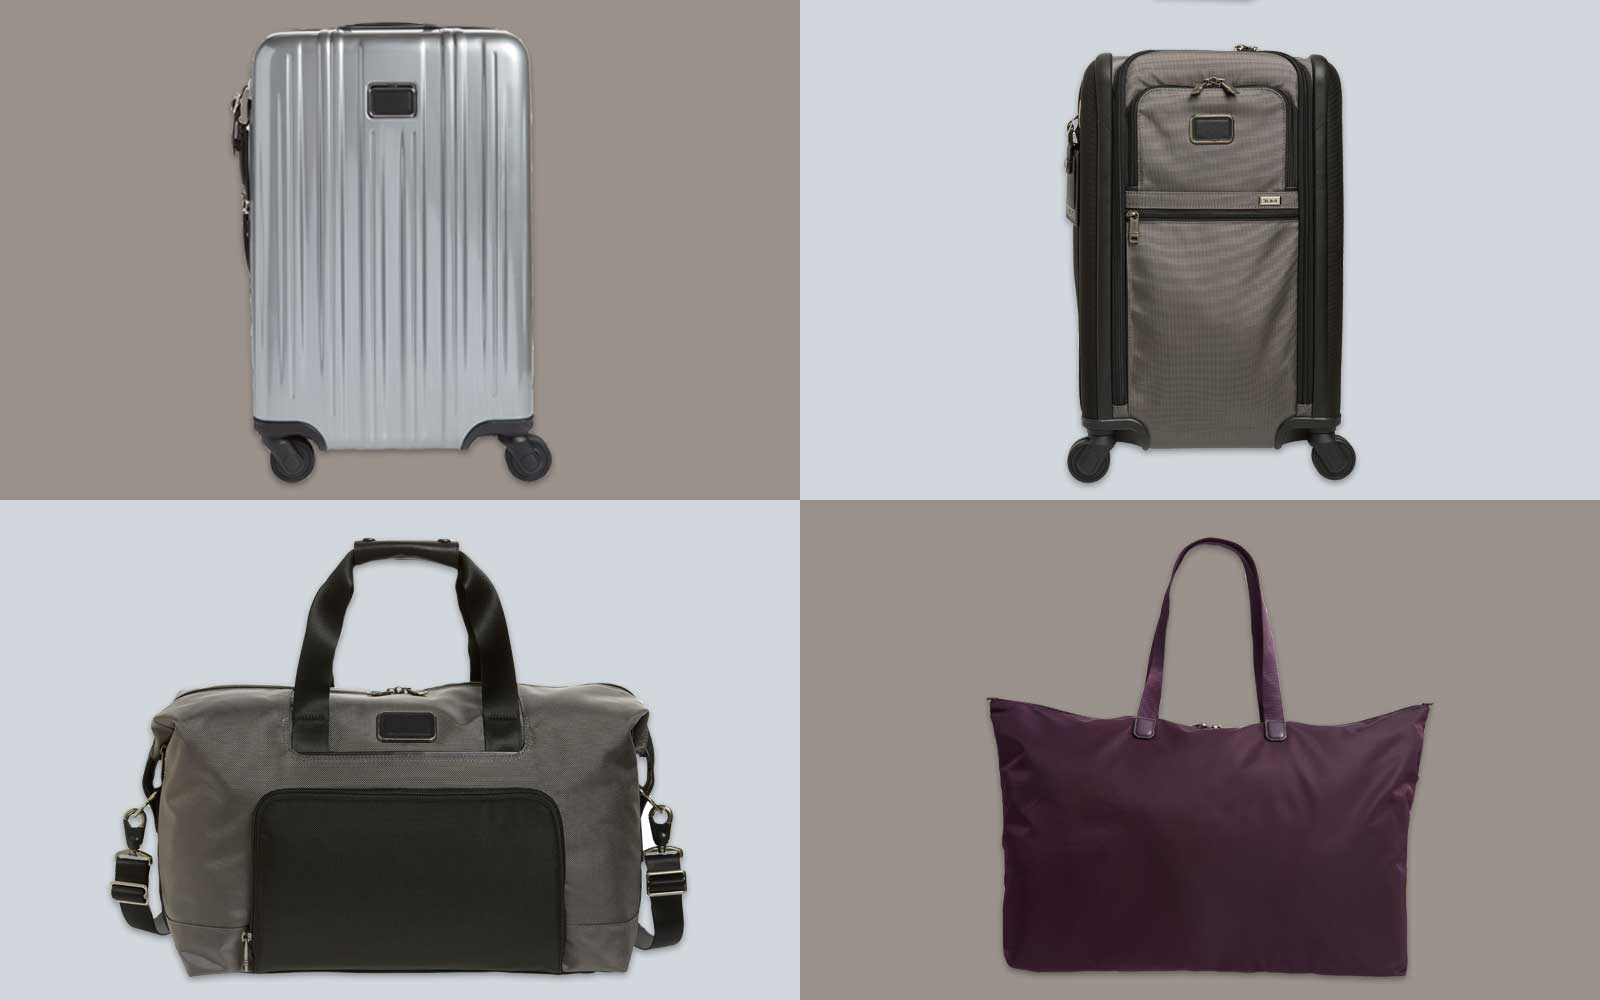 Nordstrom Anniversary Sale 2019: Save Big on Tumi Luggage